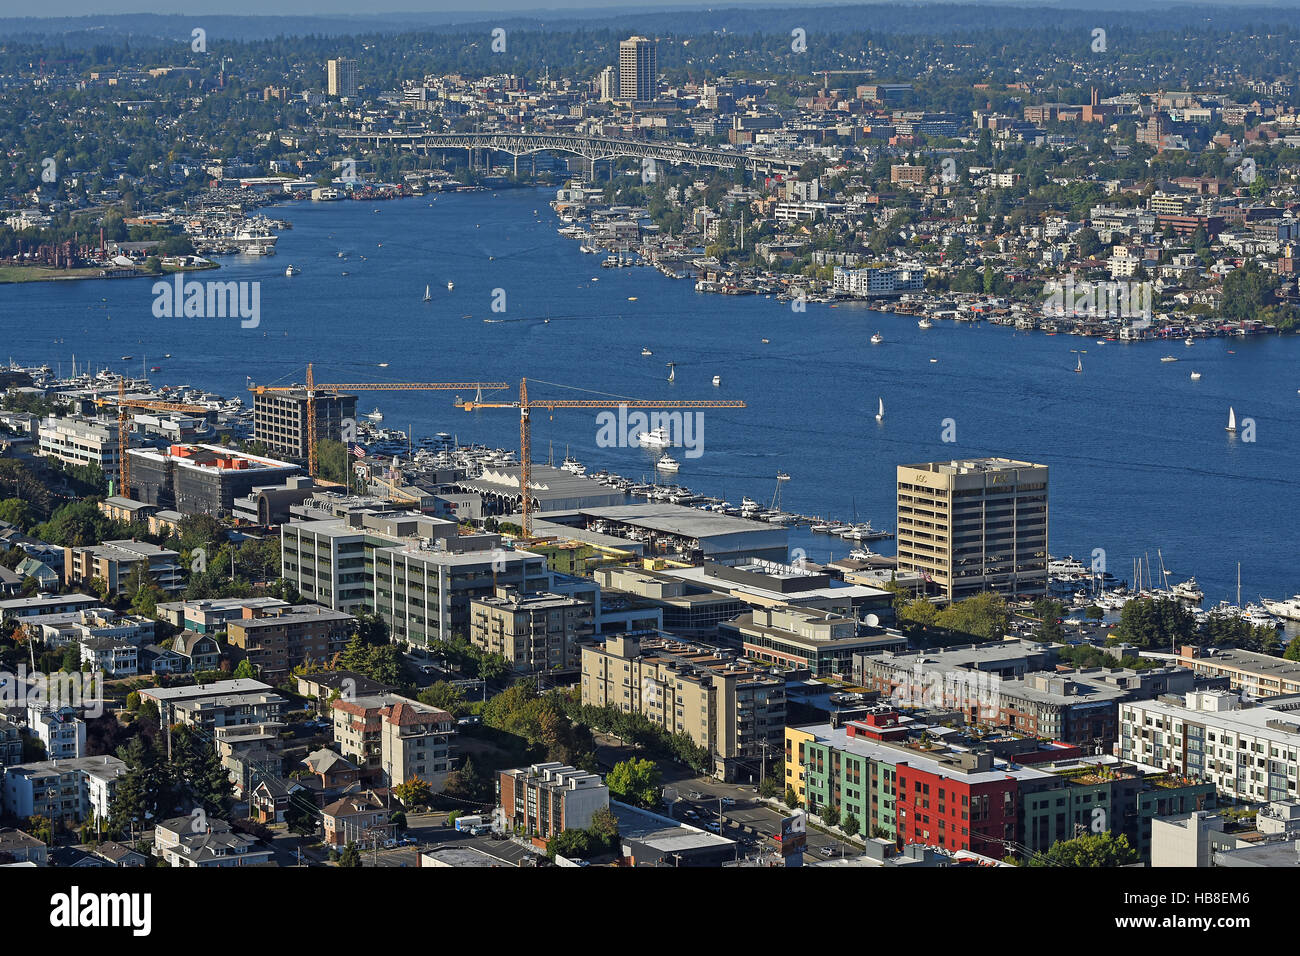 View of Lake Union from Space Needle tower, Seattle, Washington, USA - Stock Image